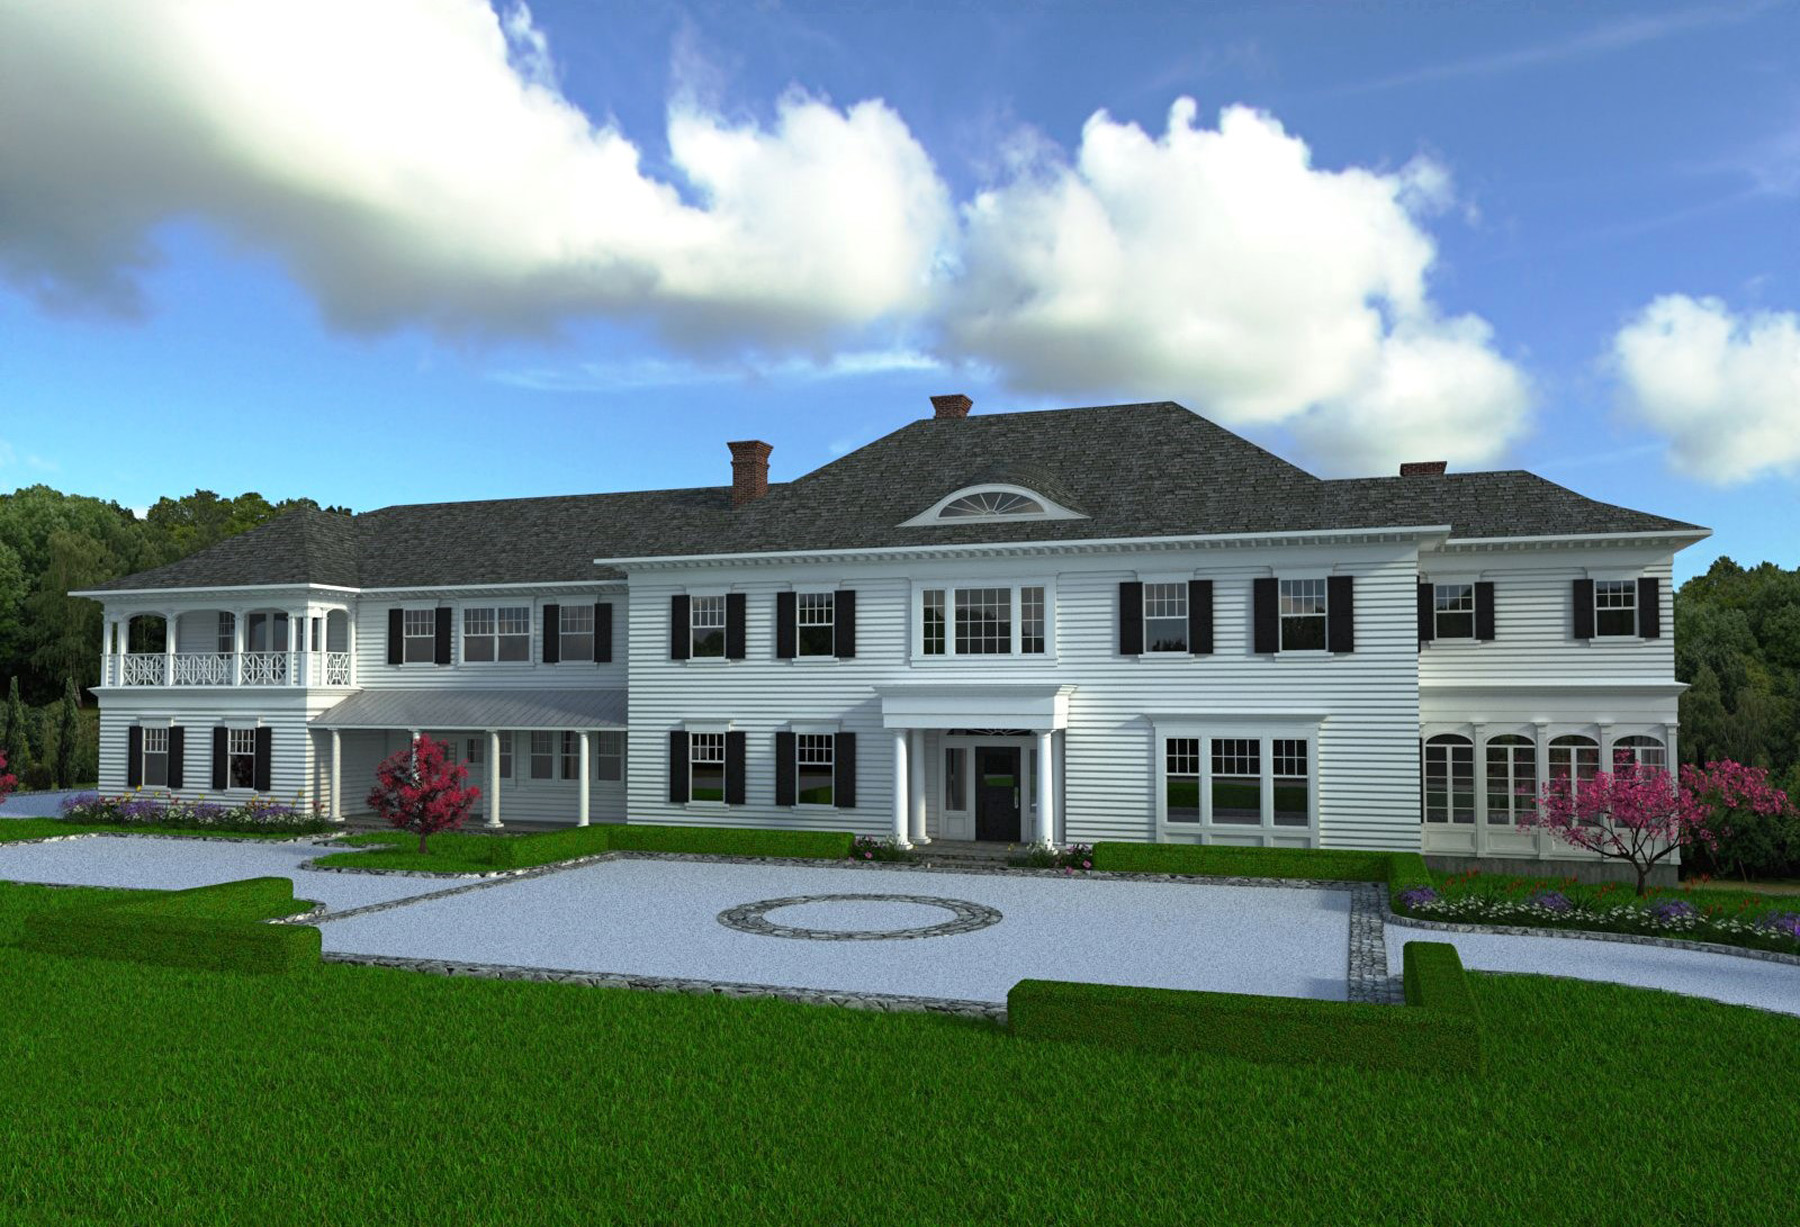 Single Family Home for Sale at Refined Elegance and Luxurious Amenities 549 Oenoke Ridge New Canaan, Connecticut, 06840 United States